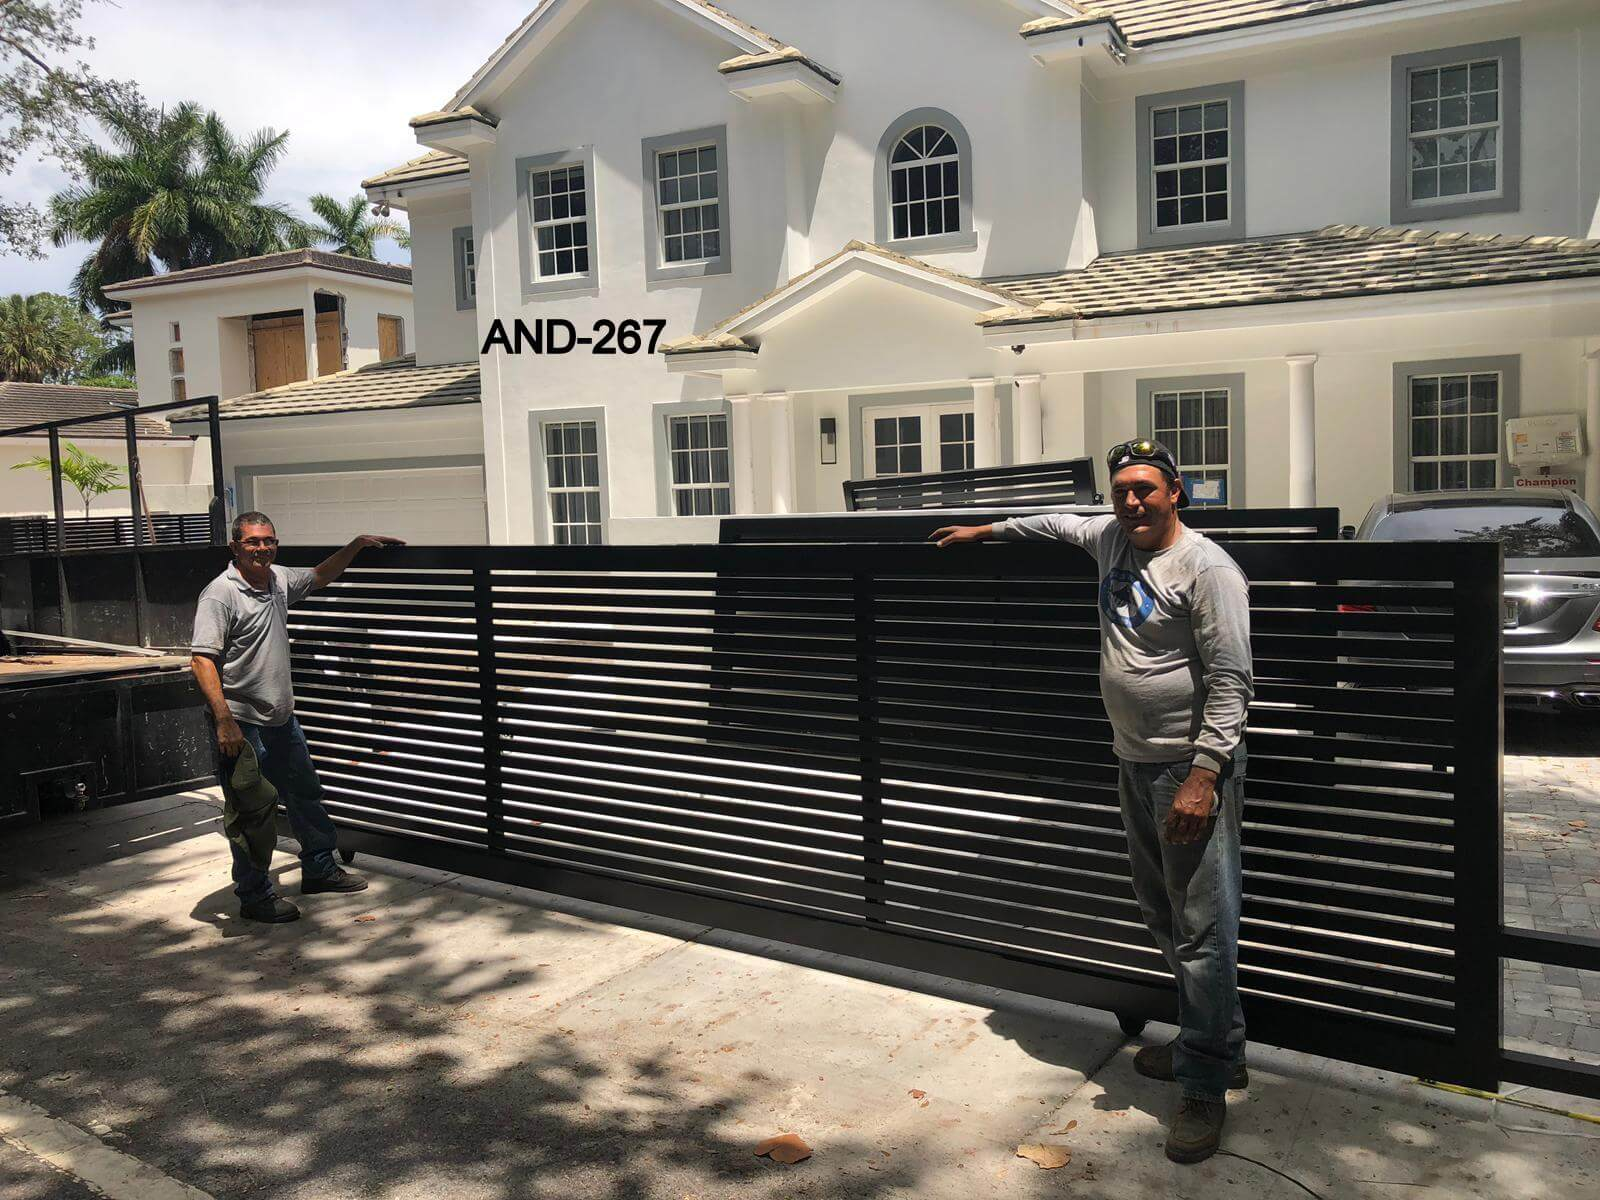 Andes Fence - Residential Fence Installation in Fort Lauderdale